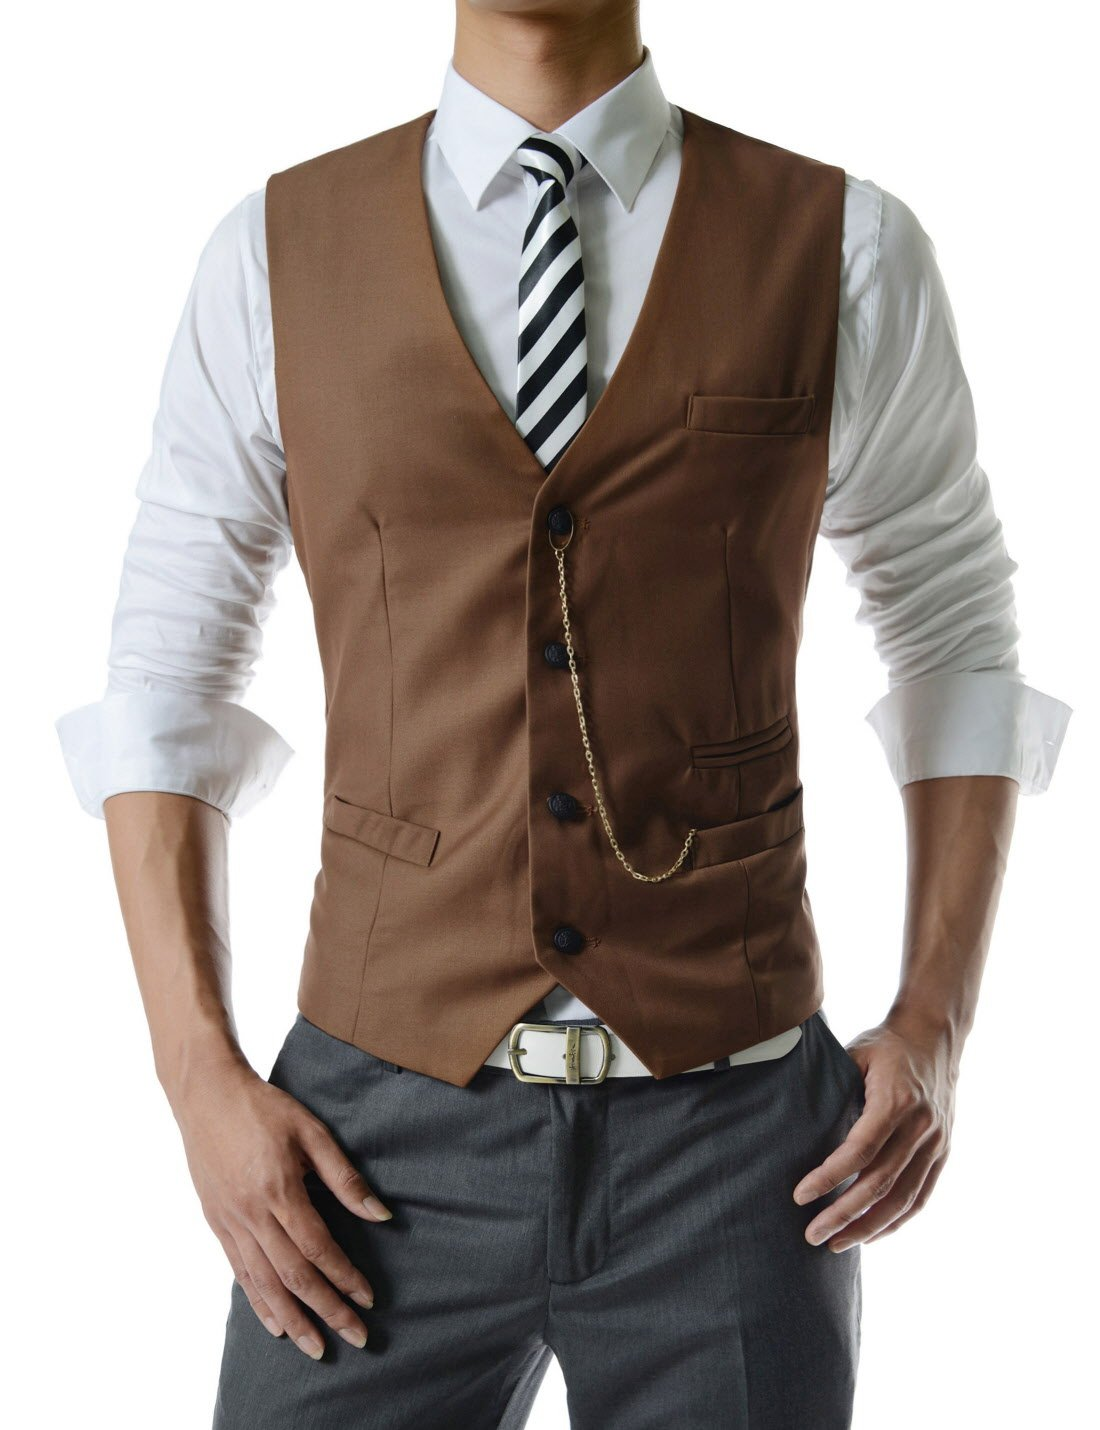 TheLees (GVE) Mens Business Slim Fit Chain Point 4 Button Vest Waist Coat Brown US S(Tag size L)